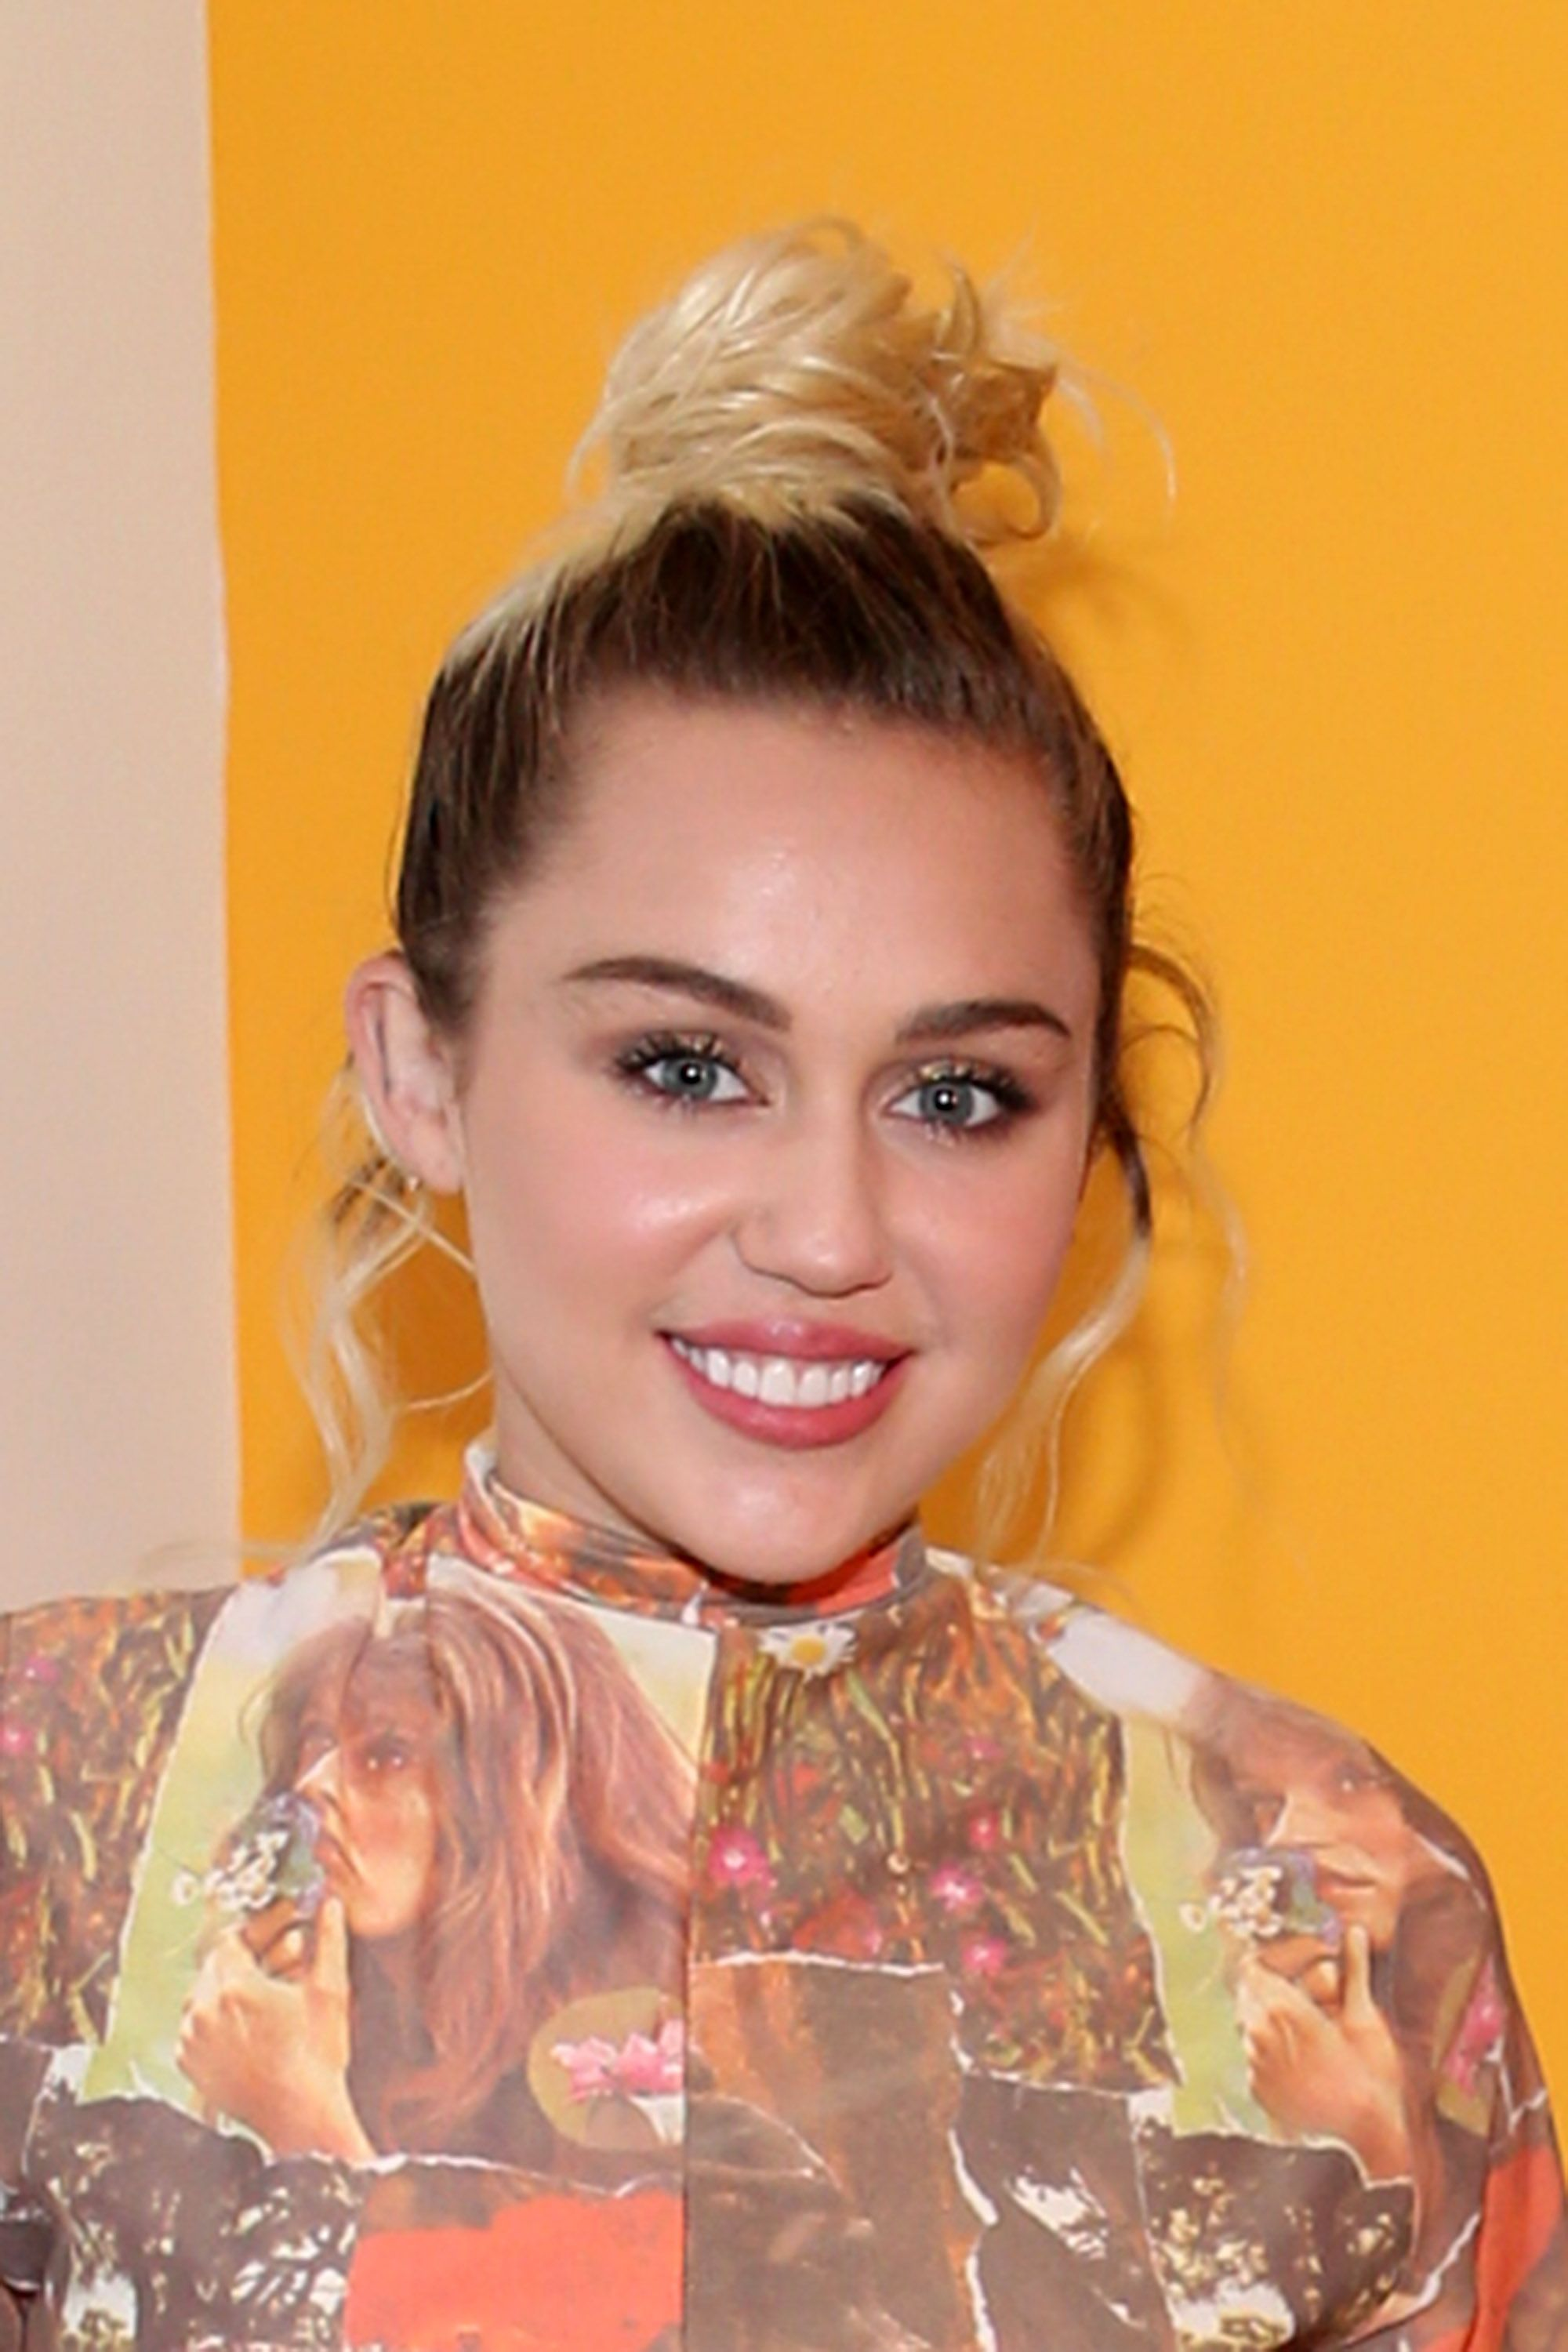 <p>Miley knows: A topknot gives you more of a neck when your collar is high. Some tendrils sweeten the deal. </p>